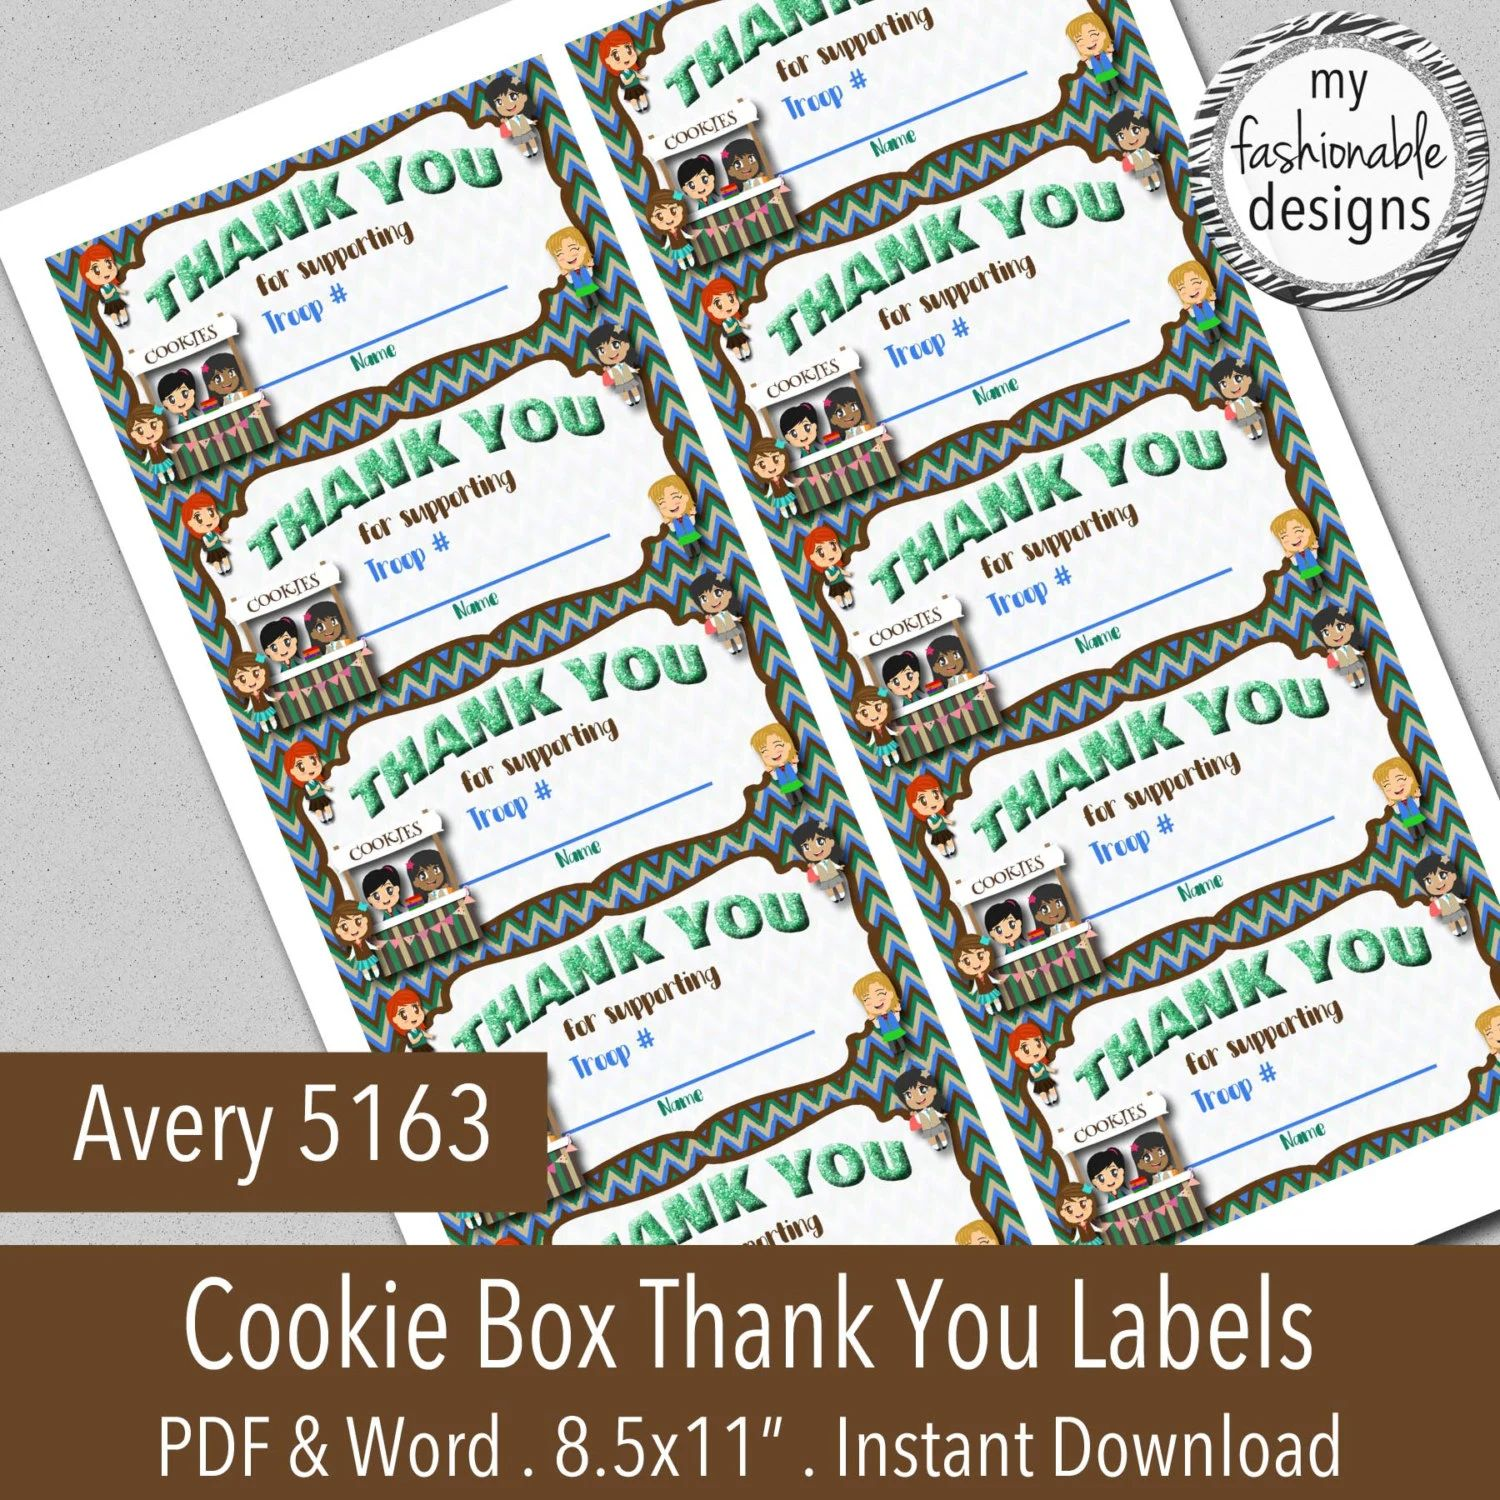 5163 avery labels